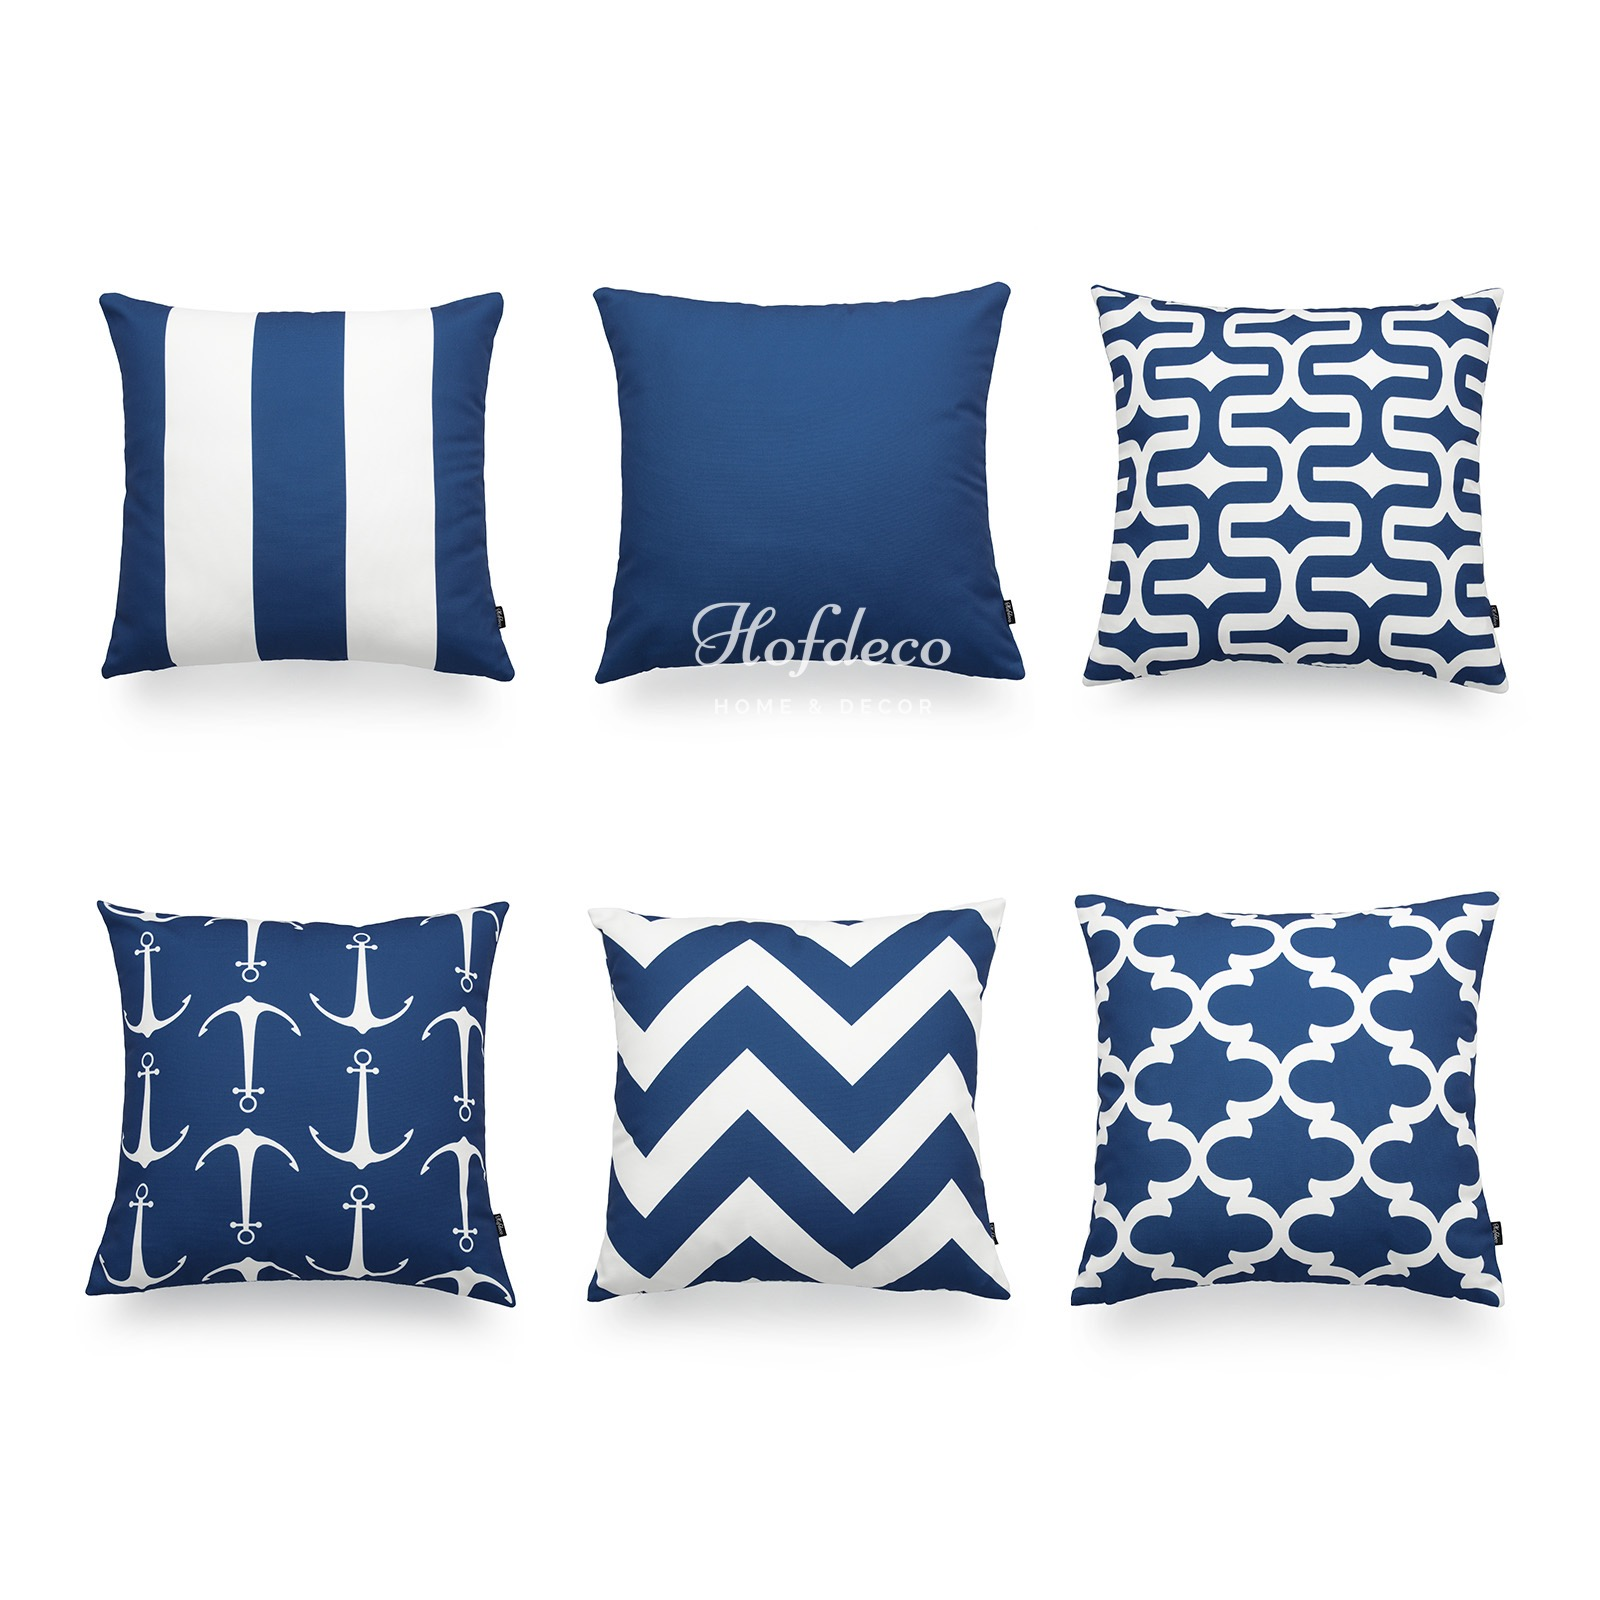 Nautical Sofa Throws Hofdeco Decorative Throw Pillow Cover Navy Blue Nautical Geometric